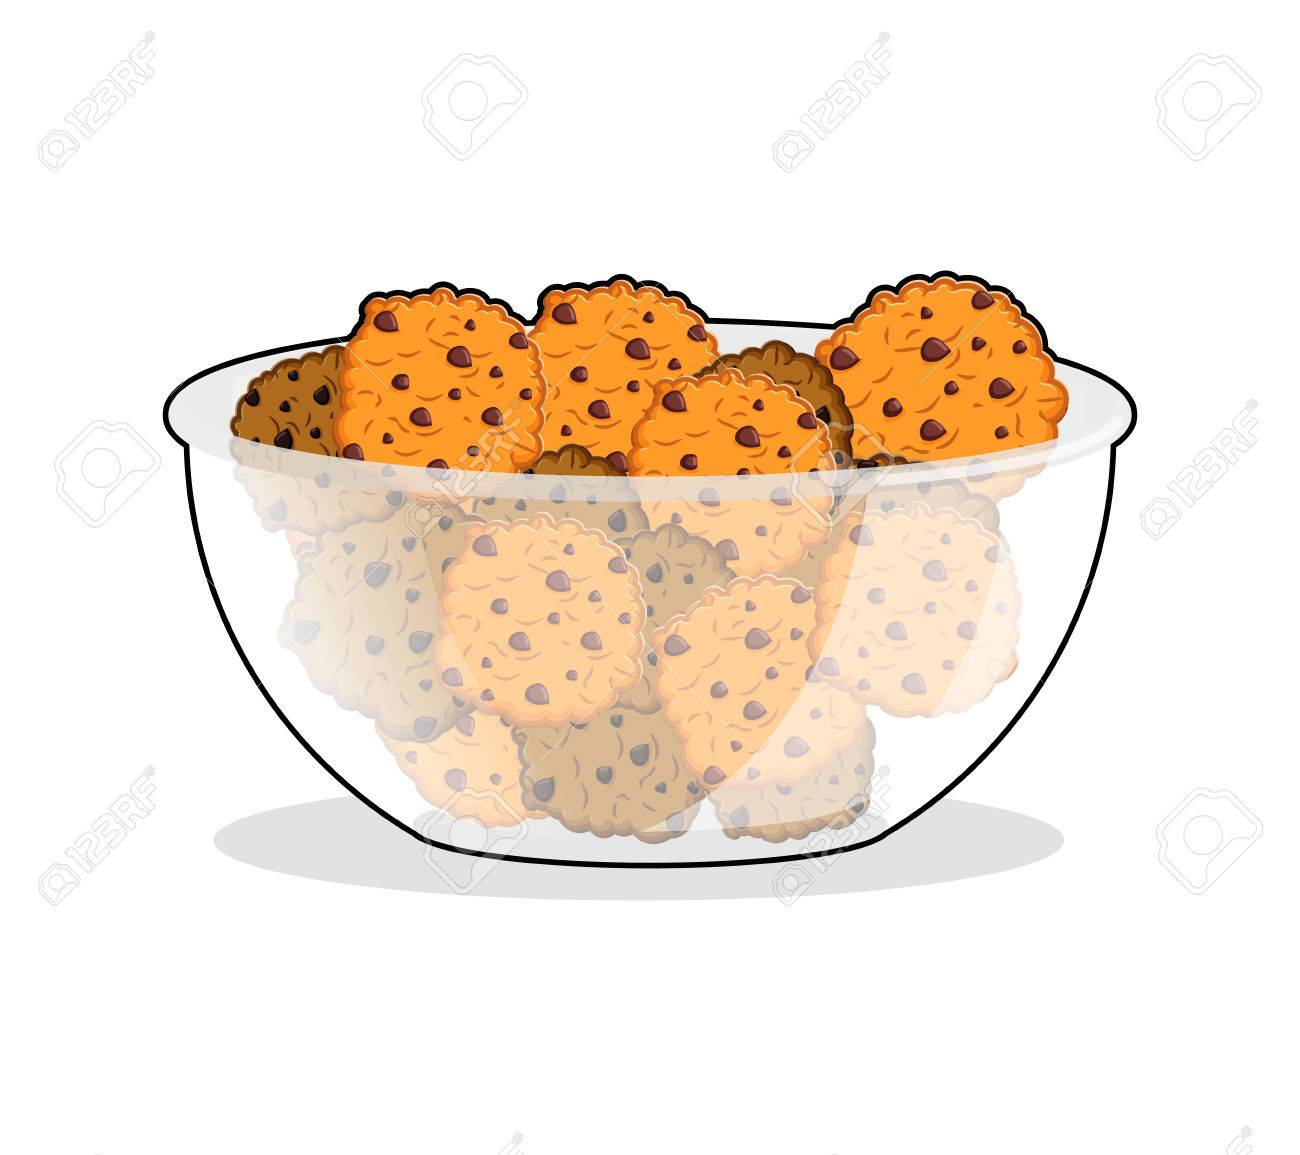 Cookies in bowl. biscuit in deep transparent plate. Oatmeal cookie...